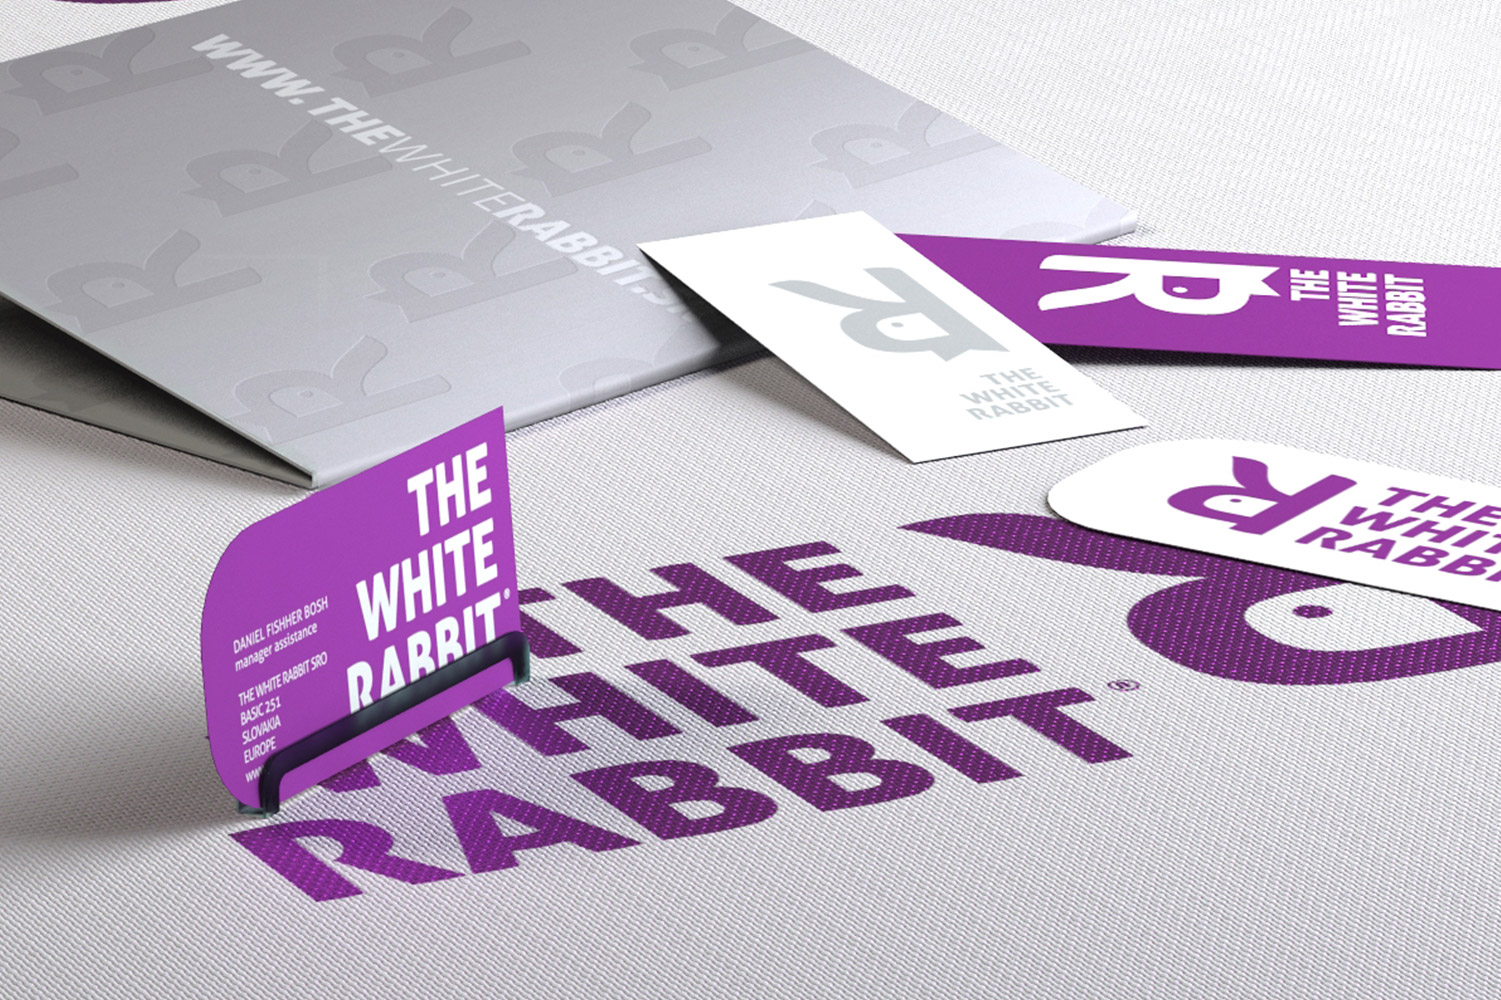 White Rabbit, Corporate Identity image